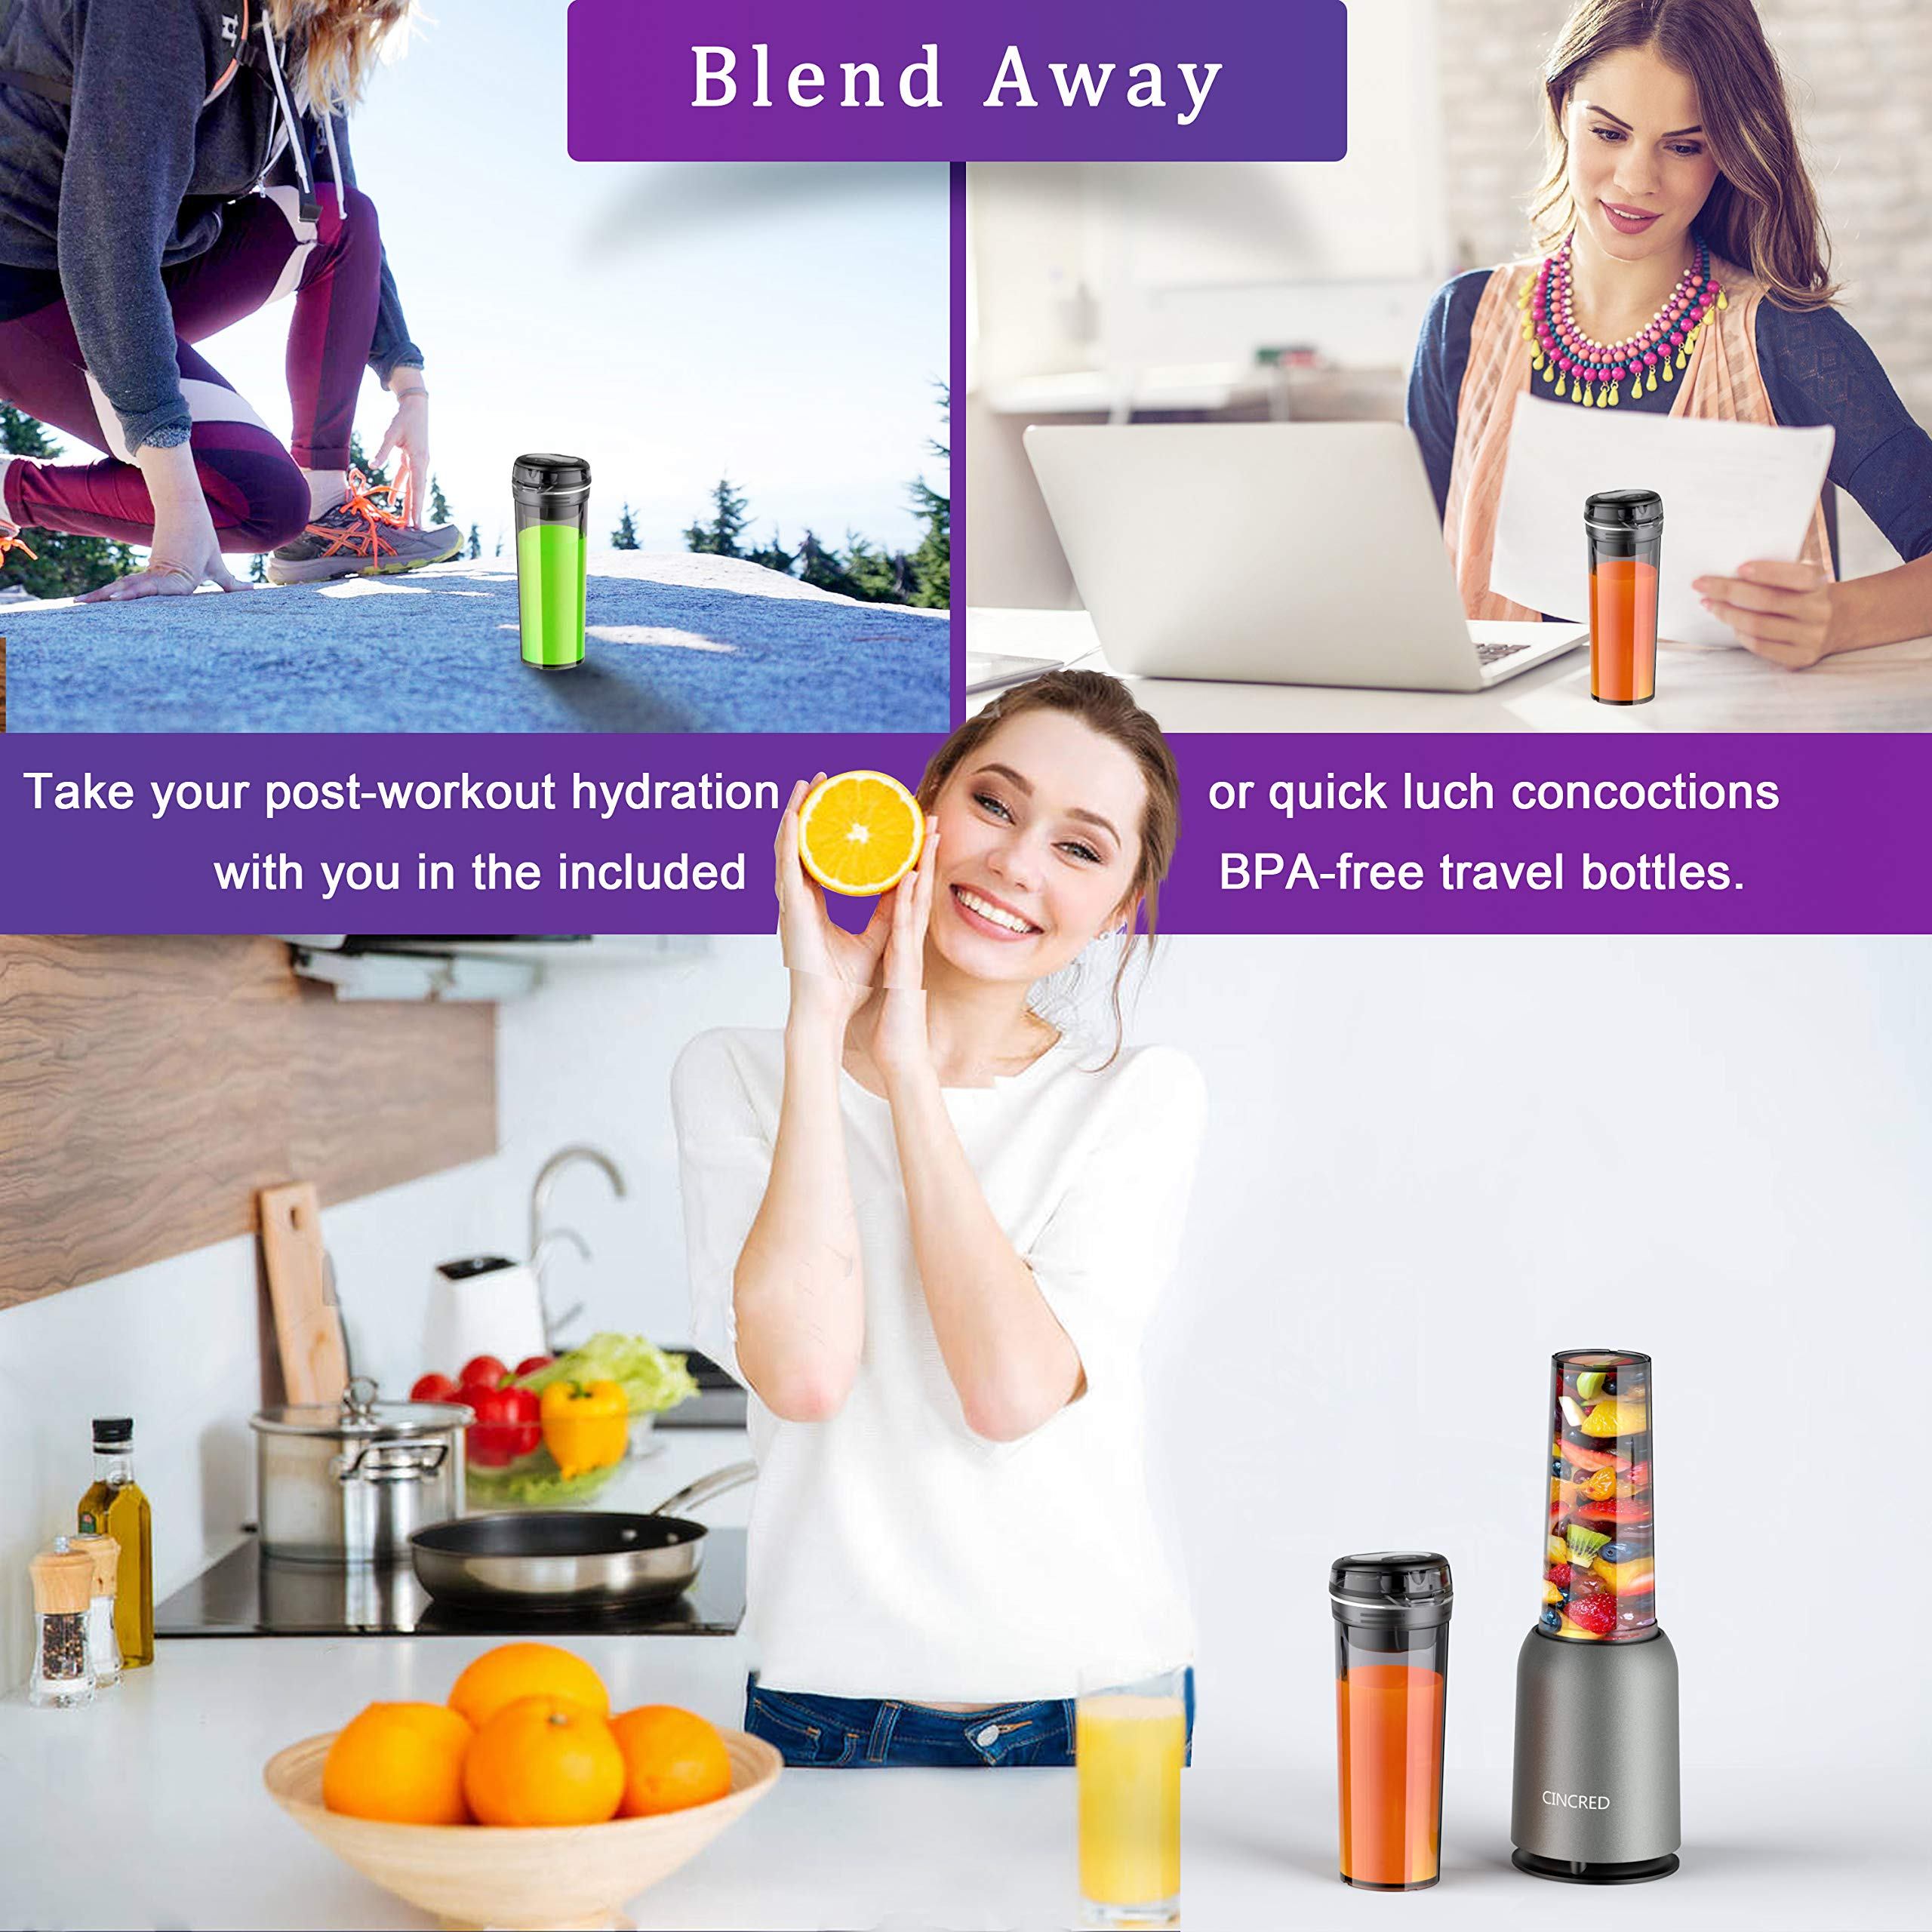 Updated 2019 Version Professional Personal Countertop Blender for Milkshake, Frozen Fruit Vegetables Drinks, Smoothie, Ice, Small Mini Portable Single Food Bullet Blenders Processor Shake Mixer Maker with Cup for Home Kitchen by Cincred (Image #4)